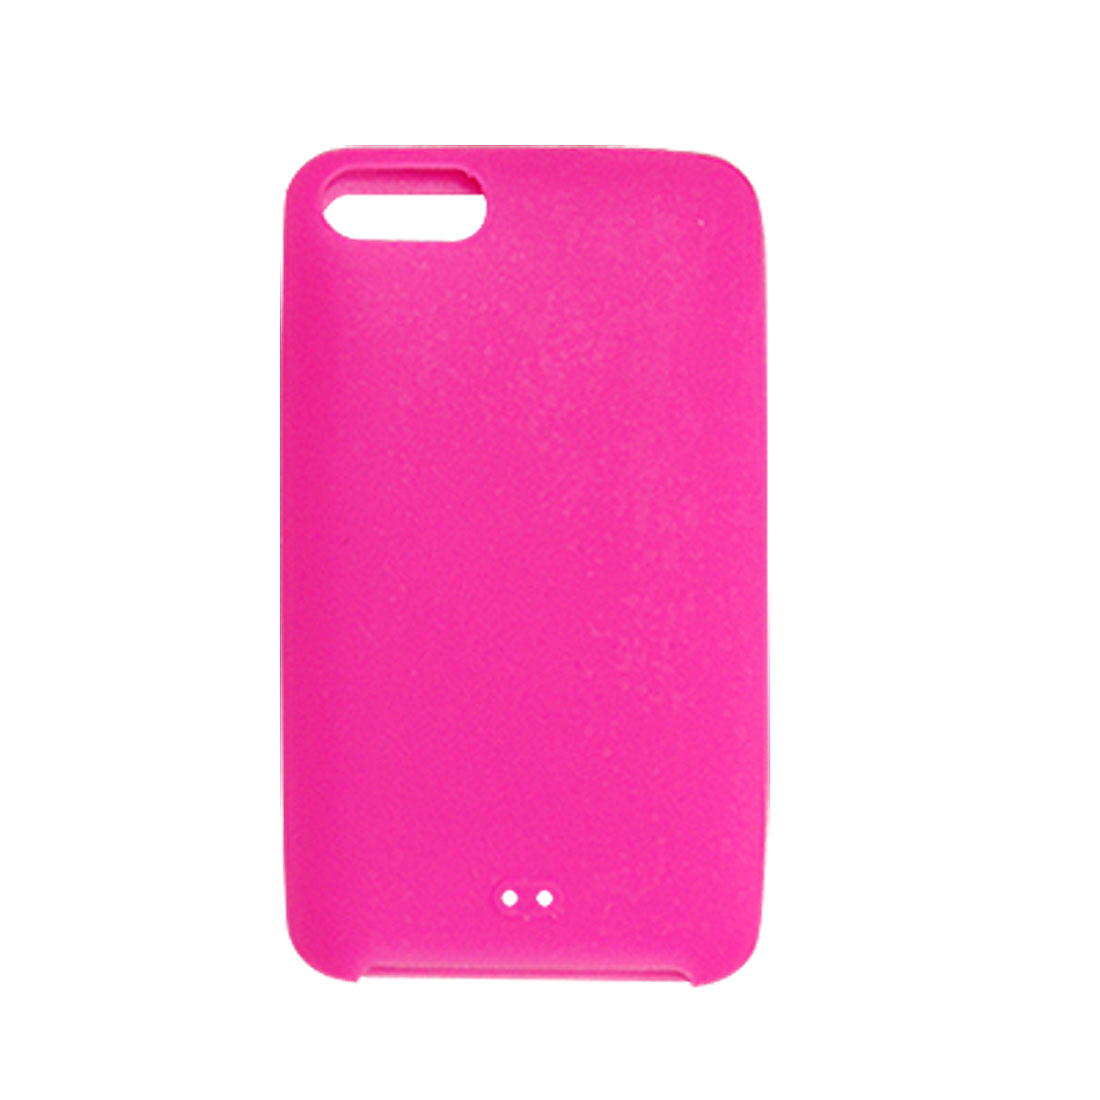 Magenta Silicone Cover Case for iPod Touch 2nd with Screen Guard